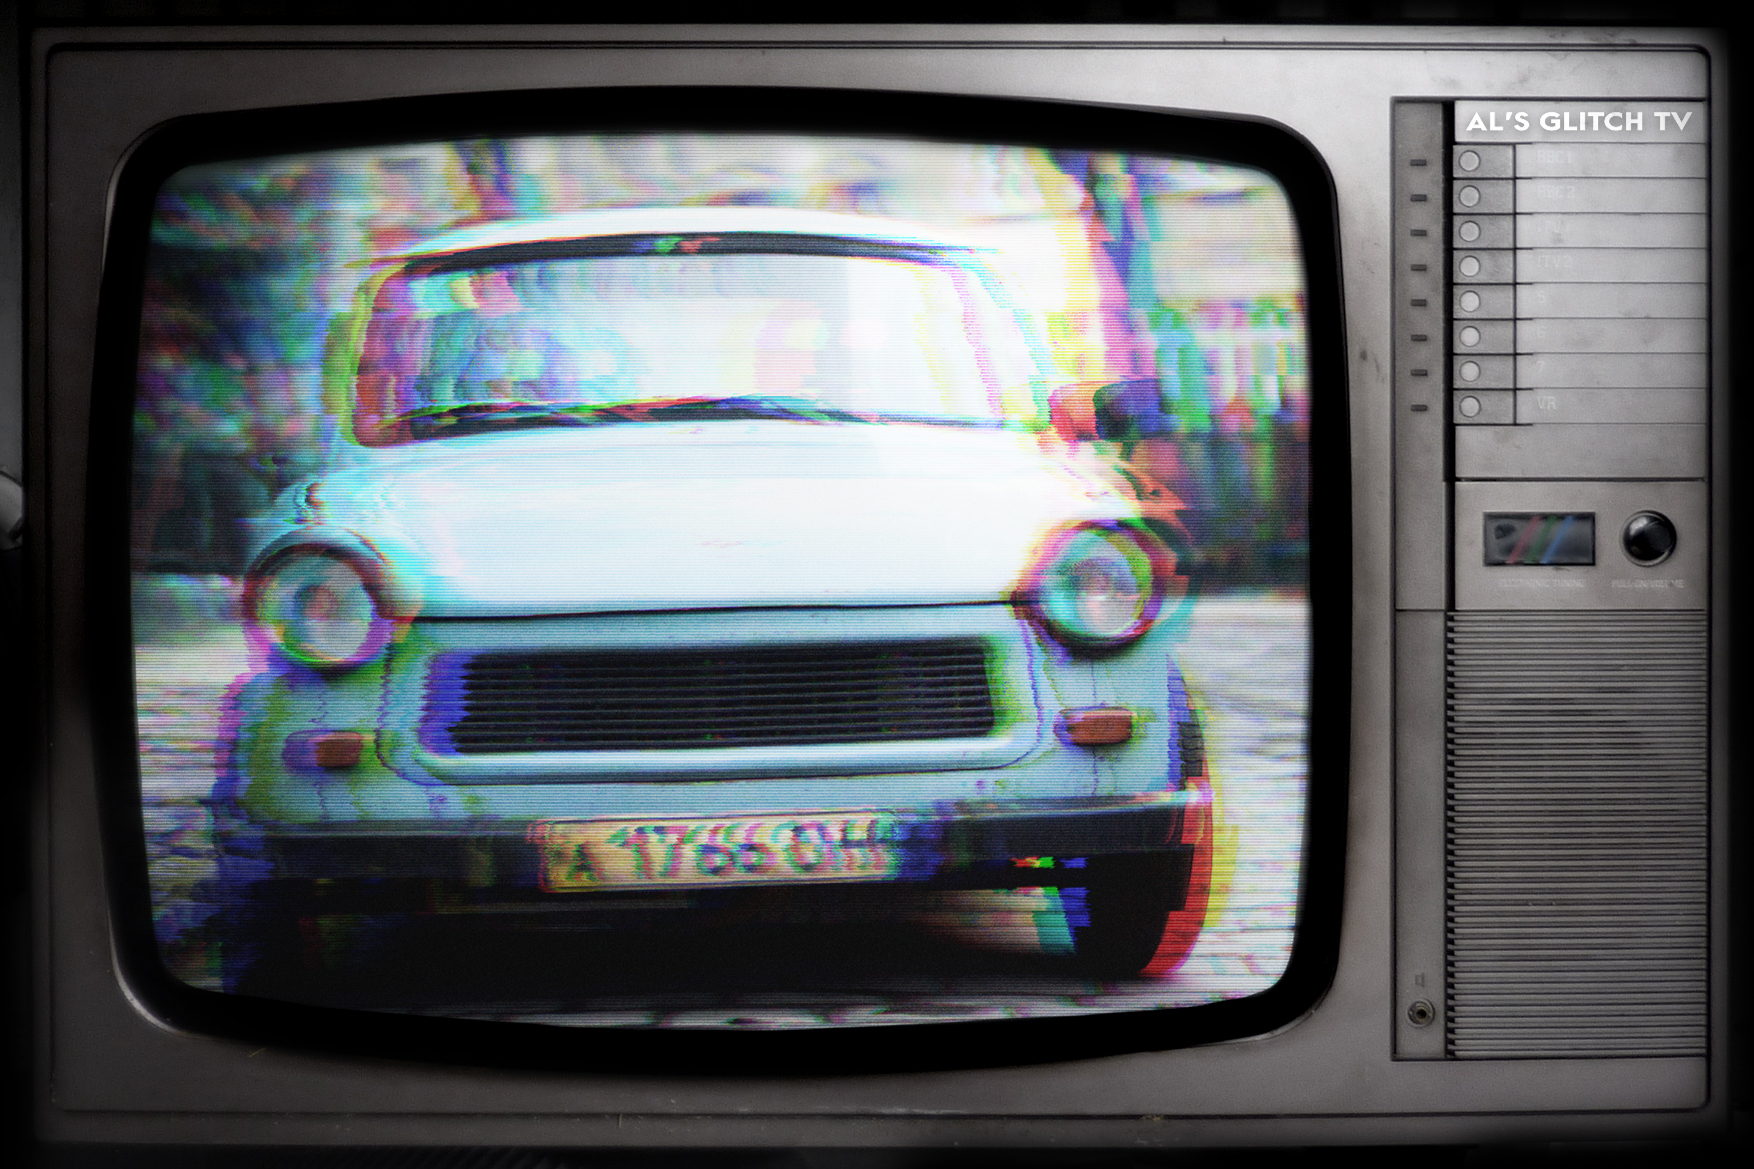 AL's Glitch TV Action Pack Vol. 1 example image 1